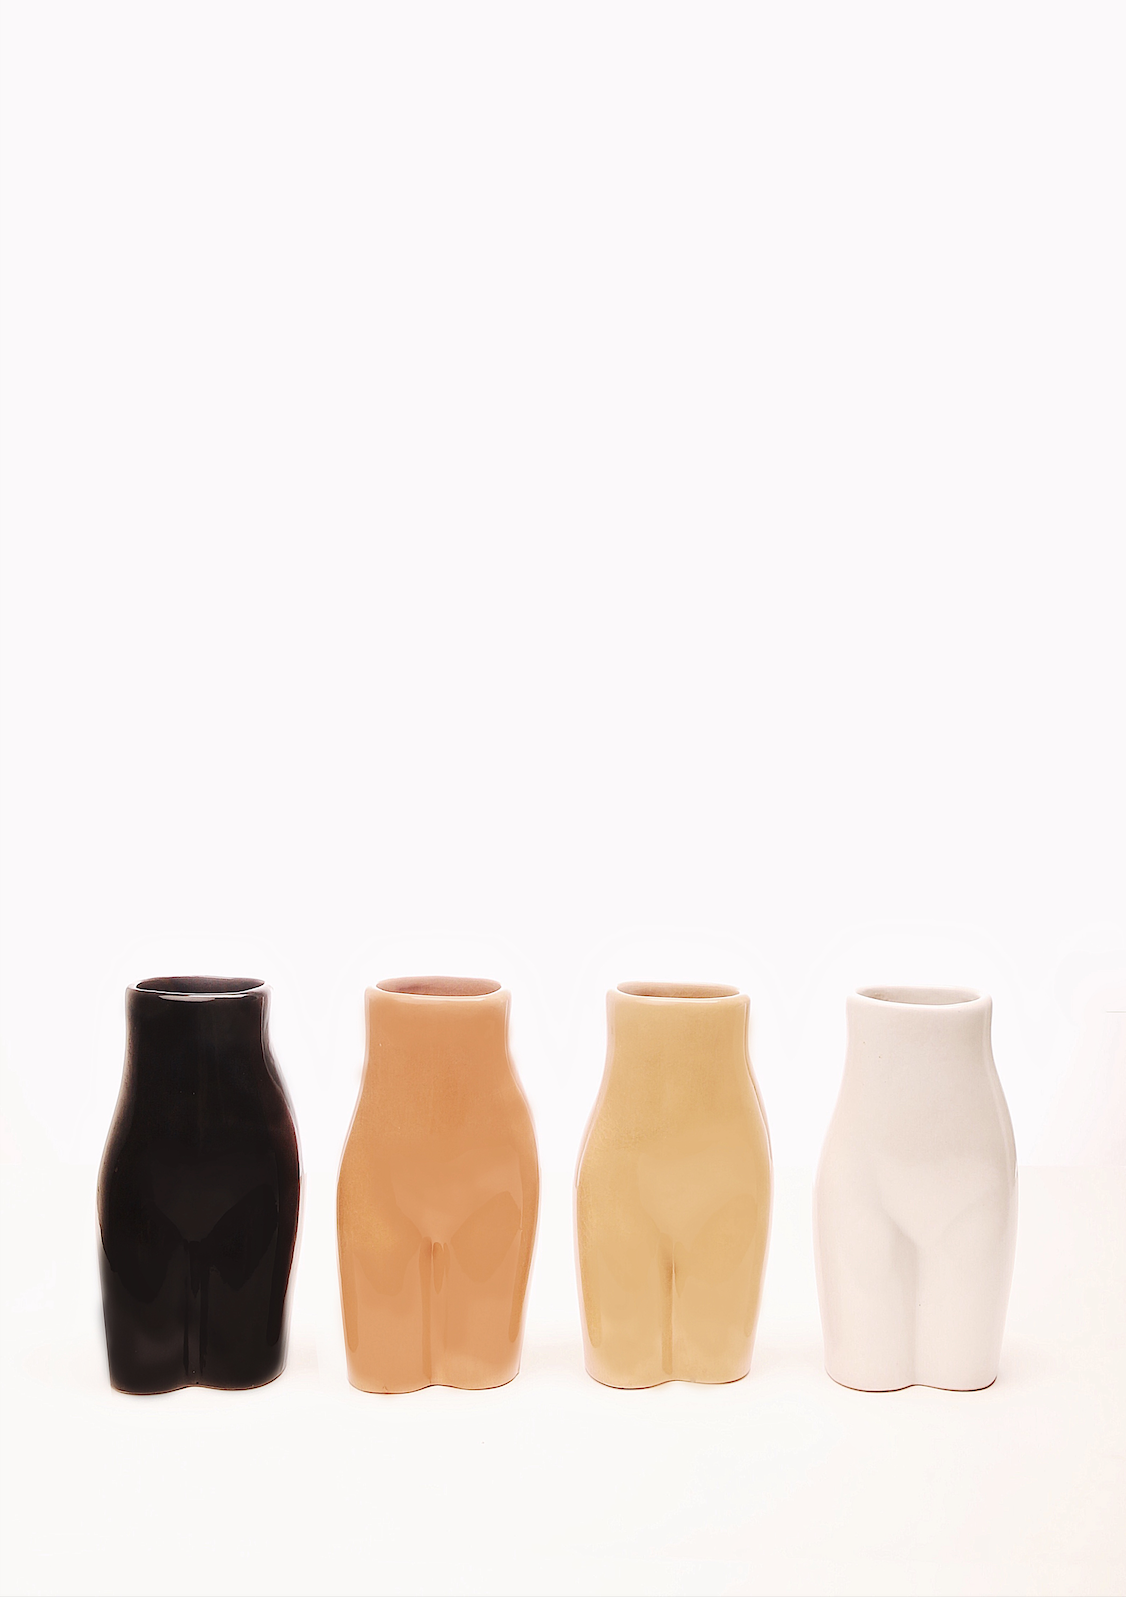 The Sonja Butt Vase in Beige